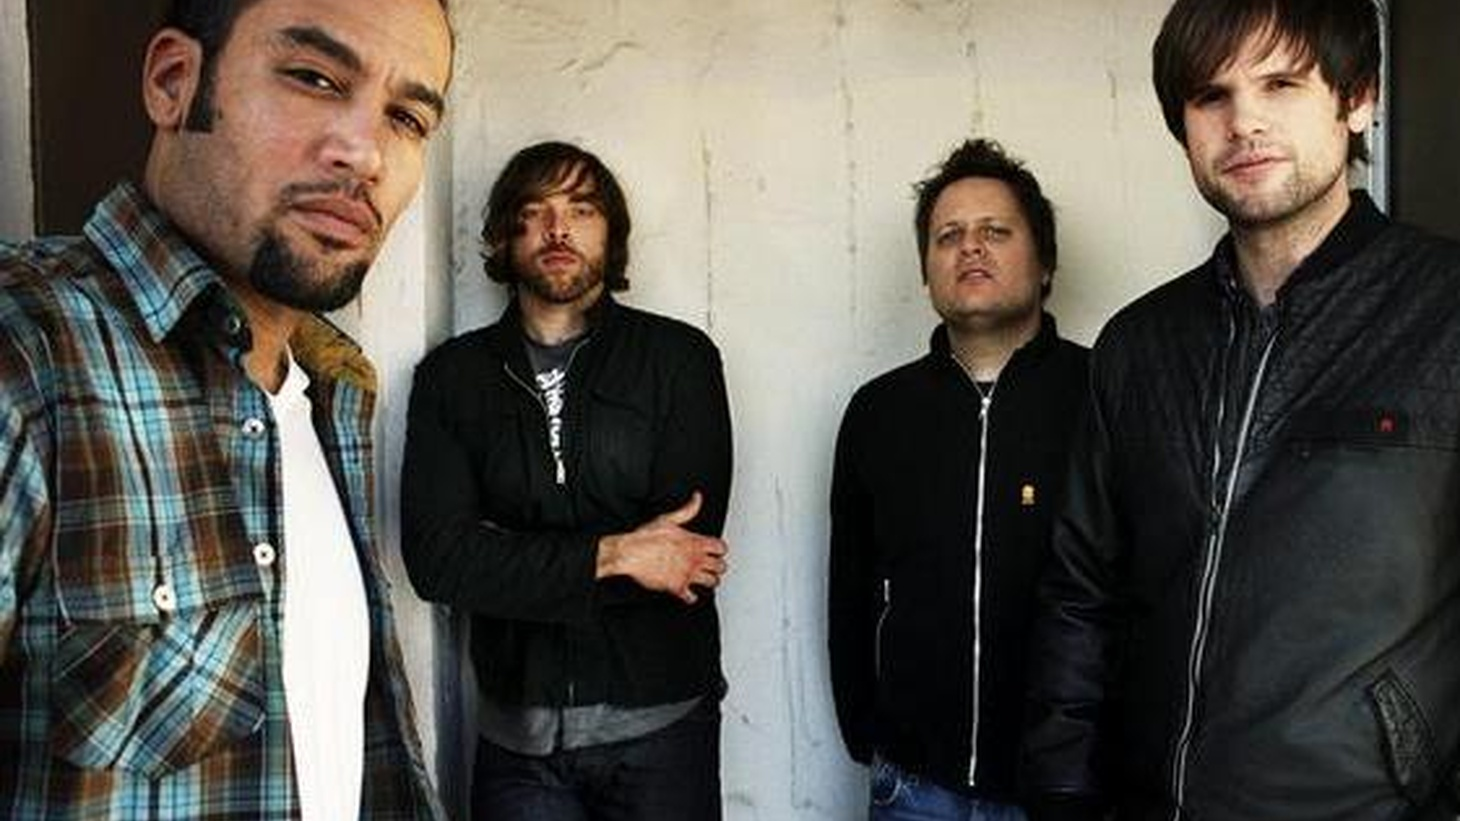 Ben Harper and Relentless7 return to Morning Becomes Eclectic at 11:15am.